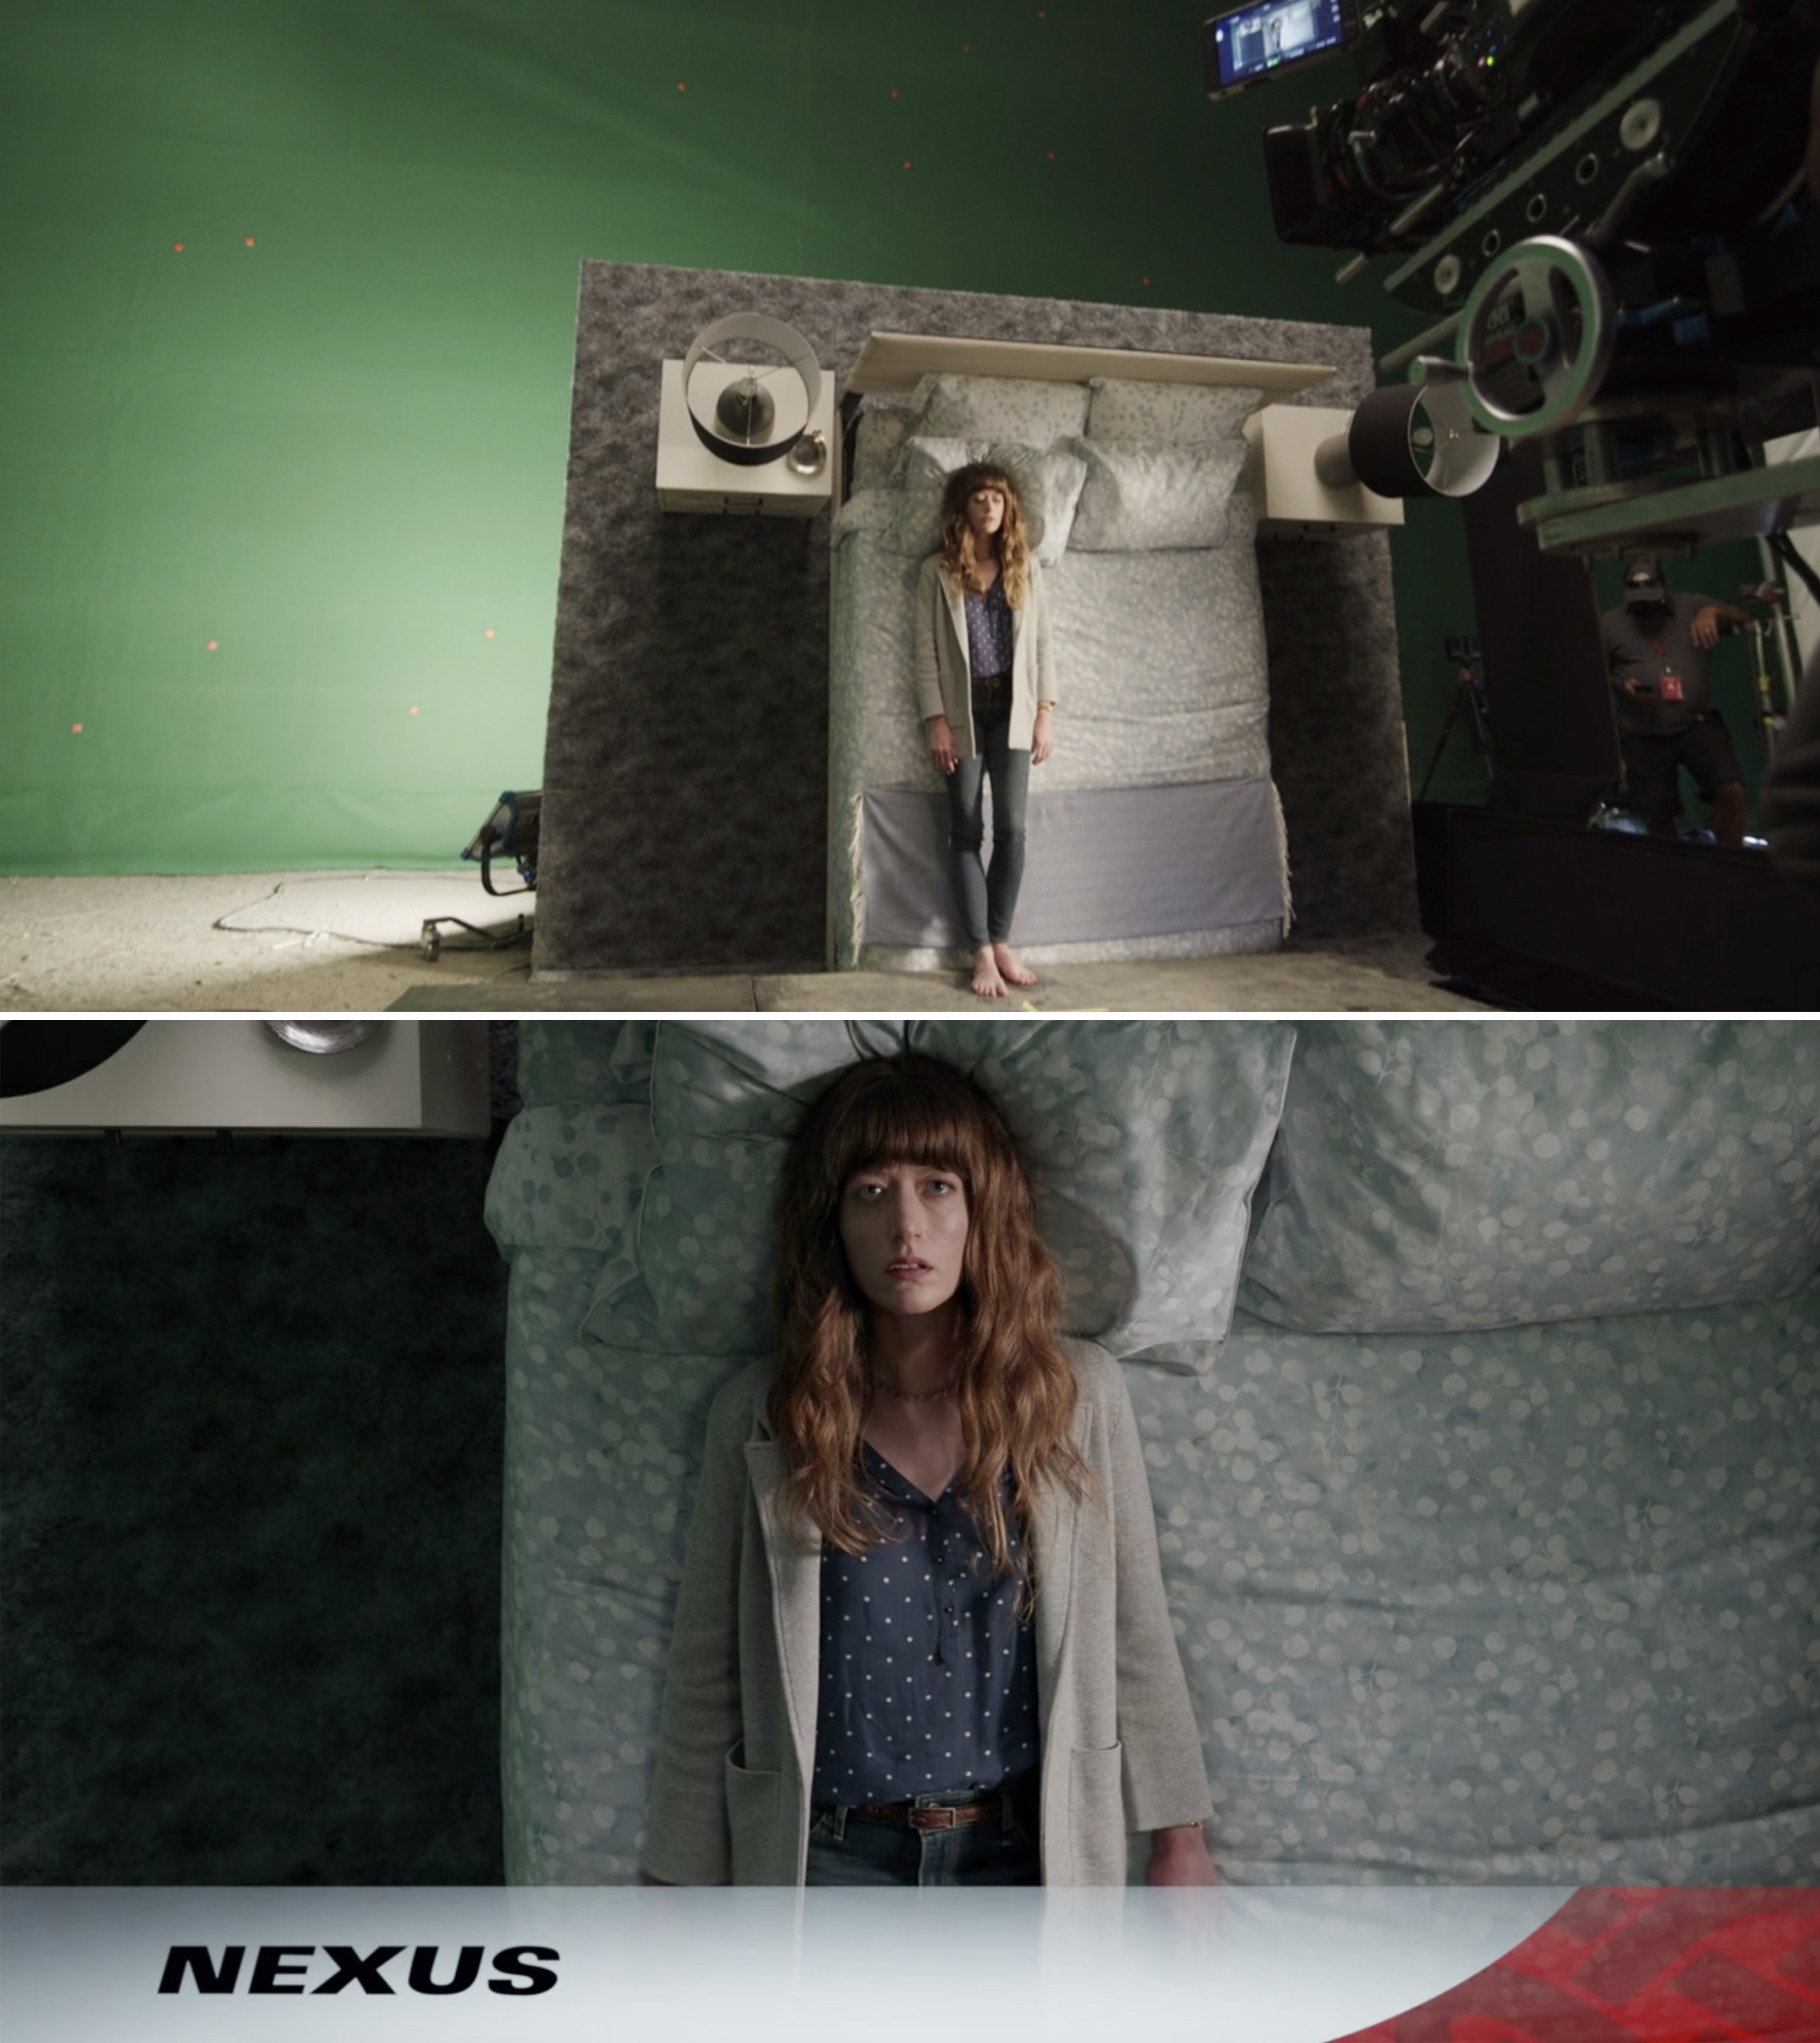 A woman lying in bed during the Nexus commerical